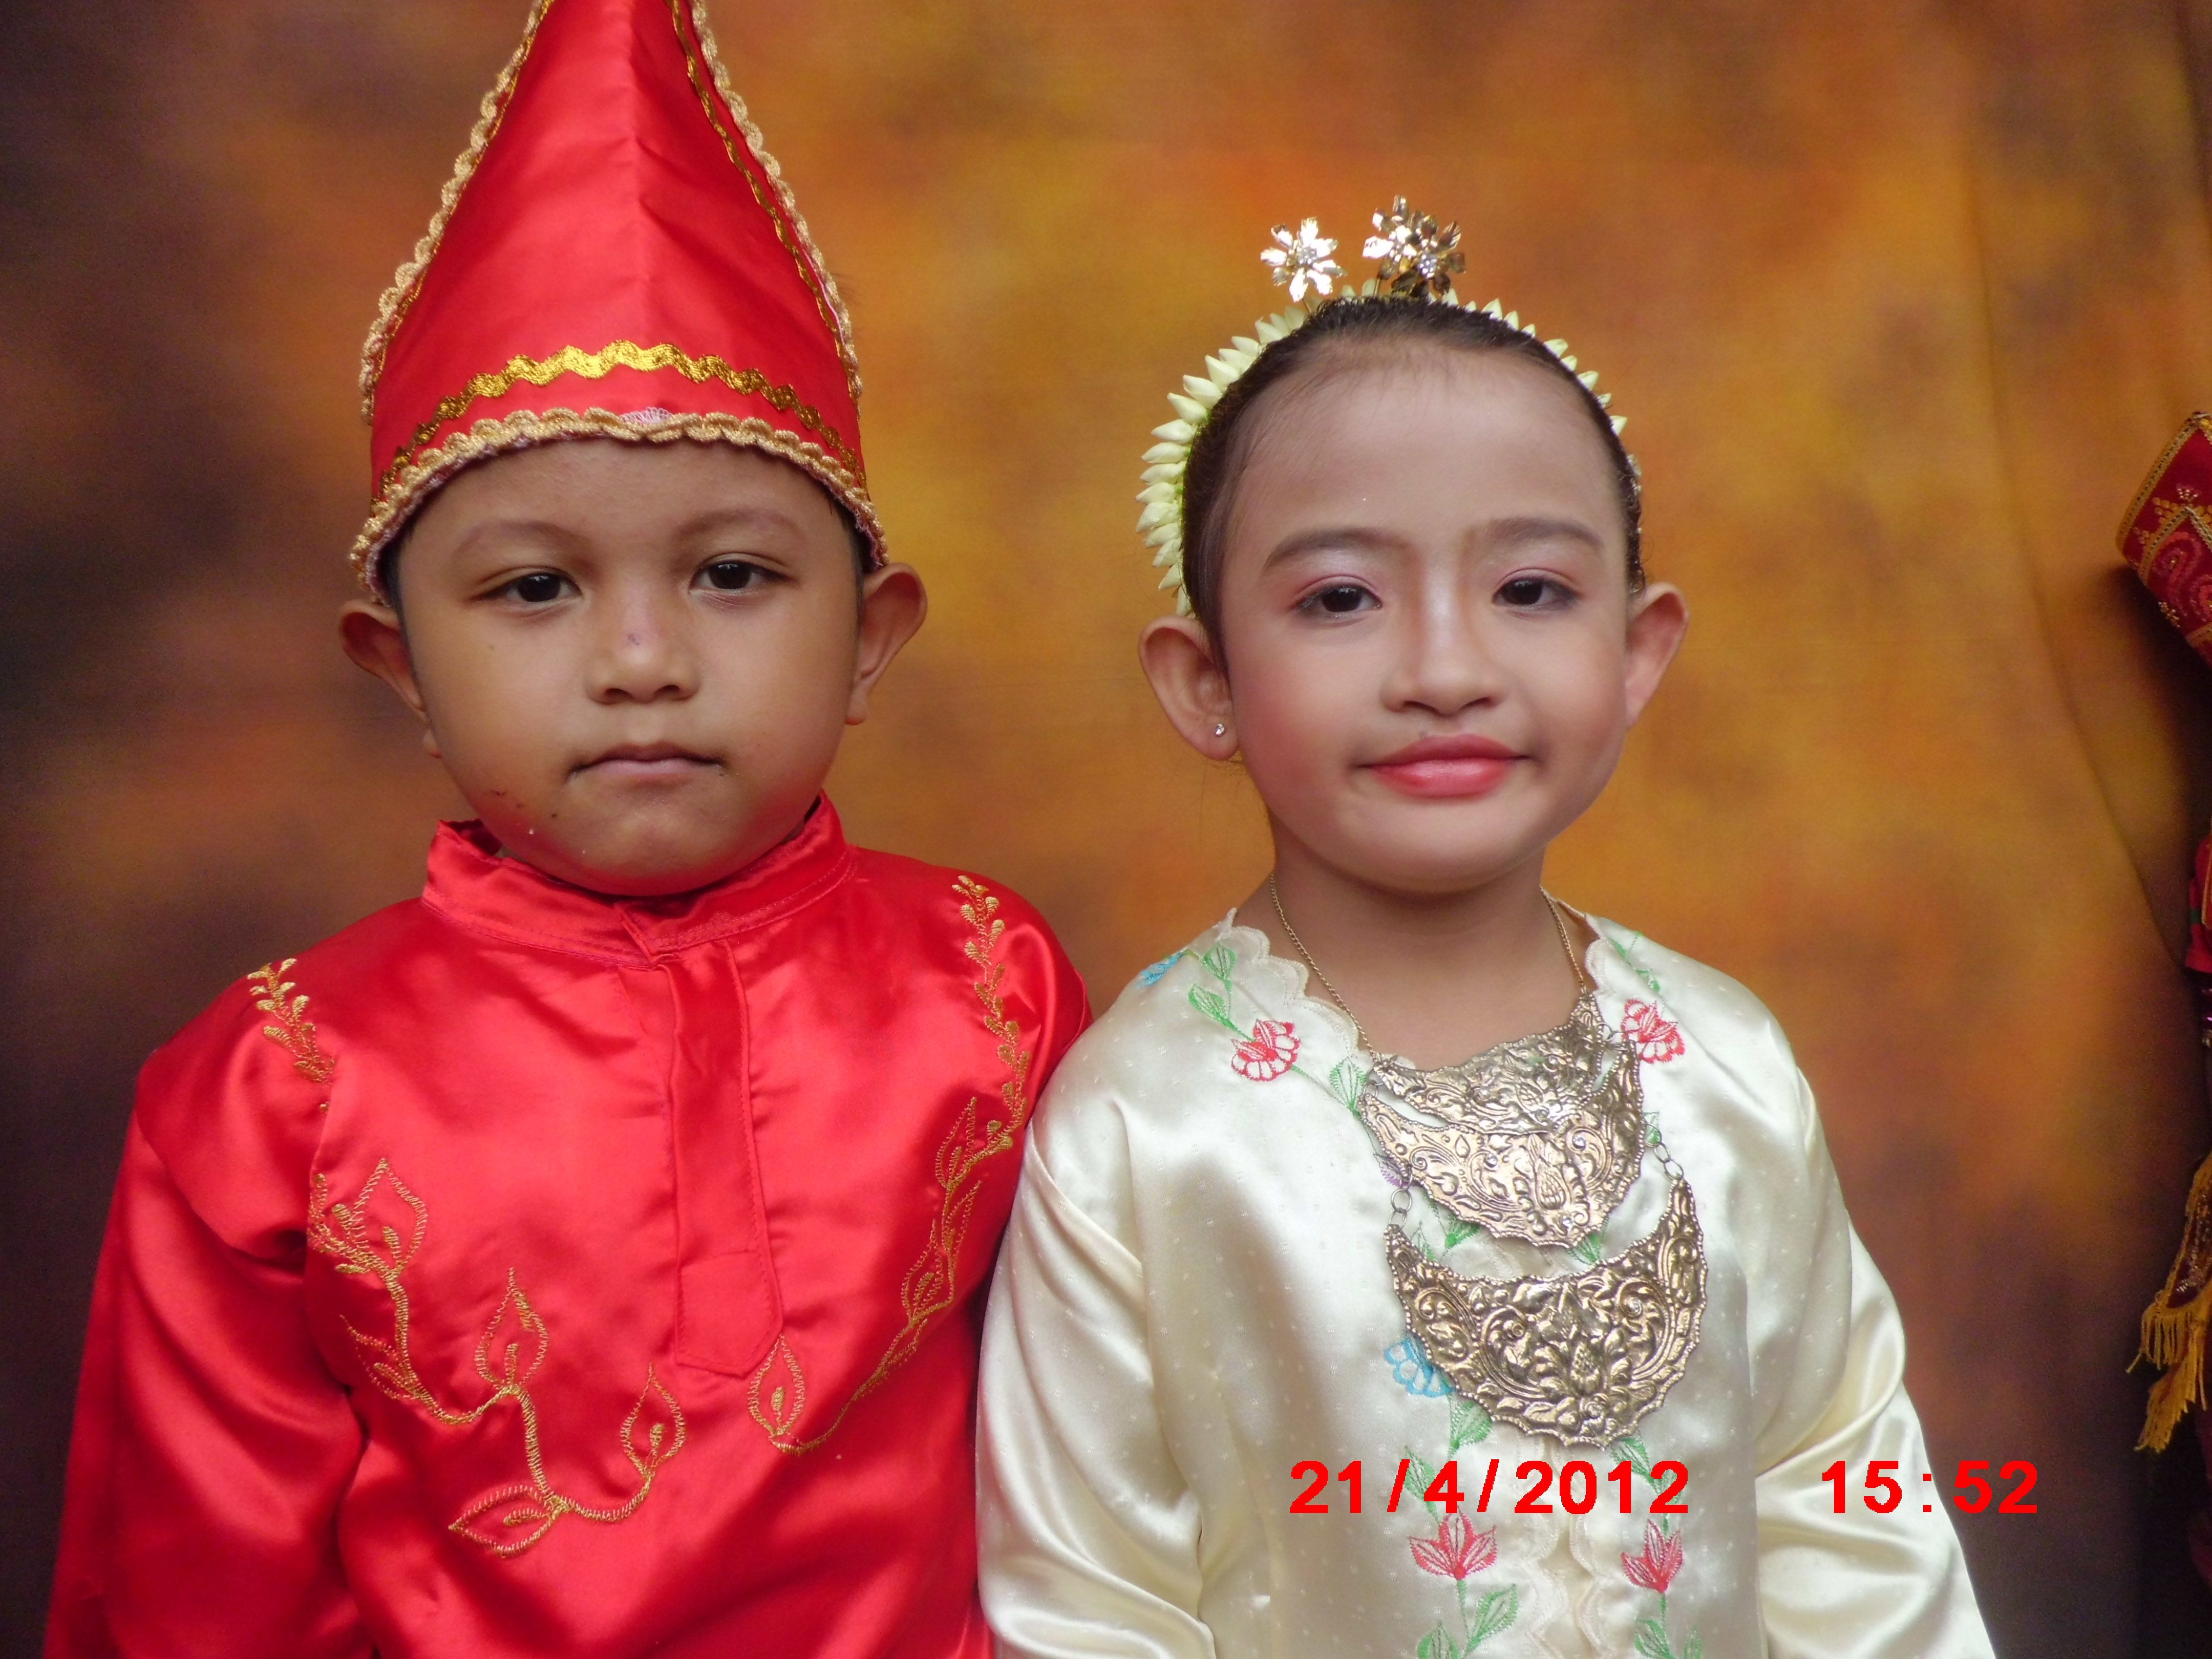 Using Indonesian traditional clothes at Kartini's day